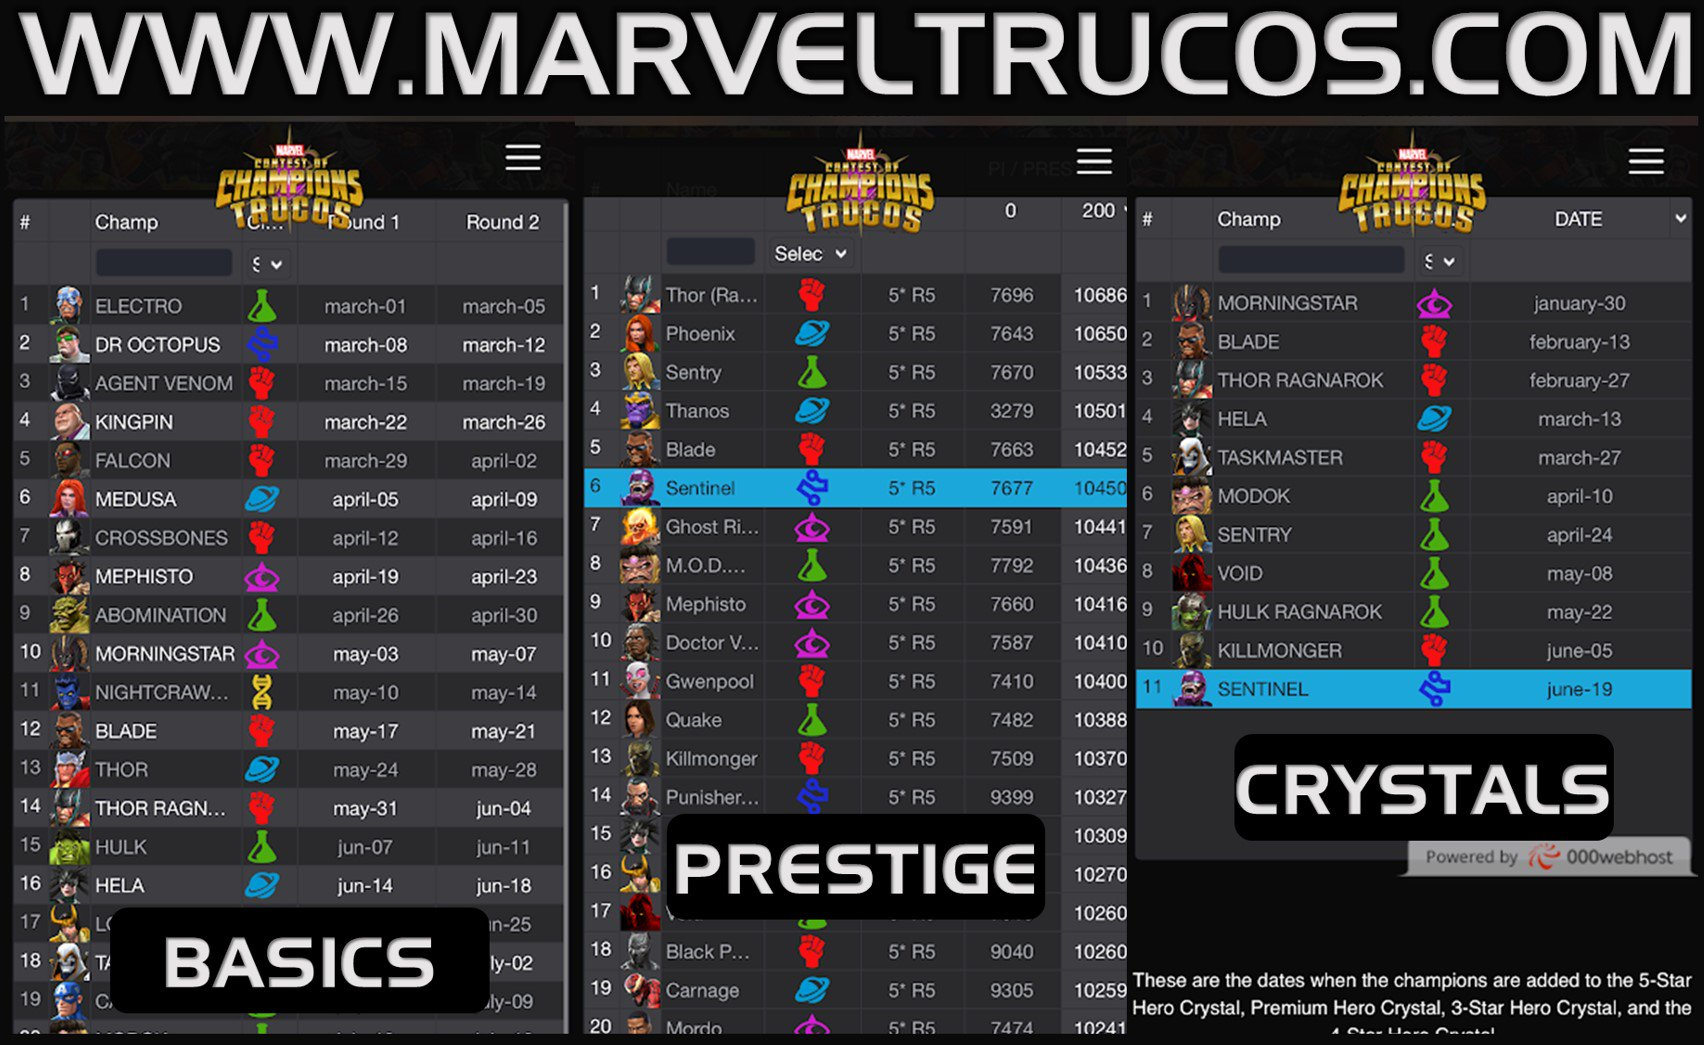 Marveltrucos On Twitter Marvel Trucos Website Is Back New Link Https T Co Grft5b7f5m Basic Calendar Https T Co C4t8mvadvf Top Prestige 5 Https T Co Cg2dlztyjy Help Us Maintain The Site And Keep It Running By Making A Donation Https T